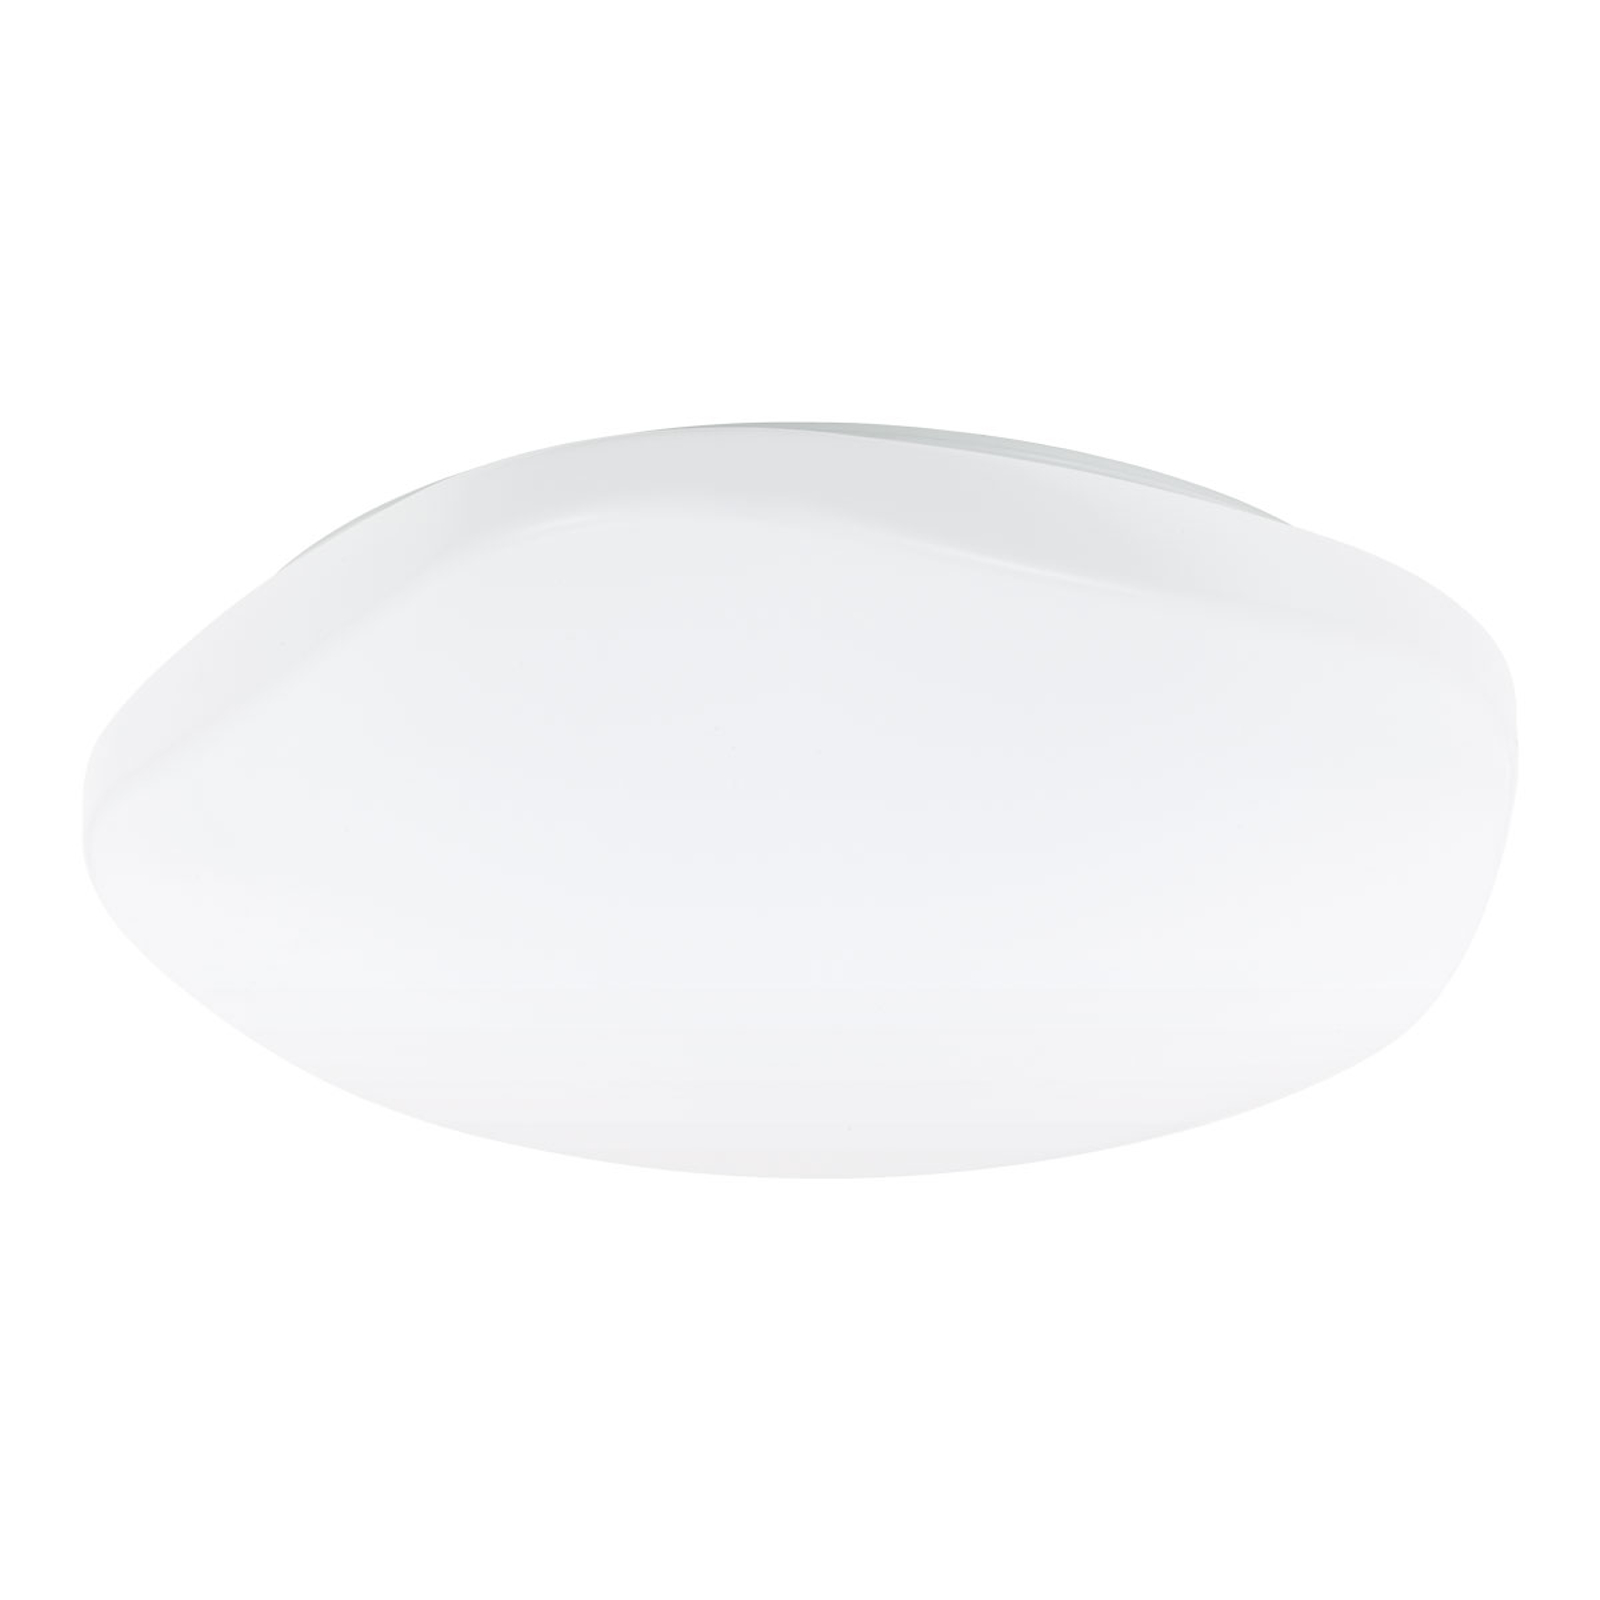 EGLO connect Totari-C LED plafondlamp in wit